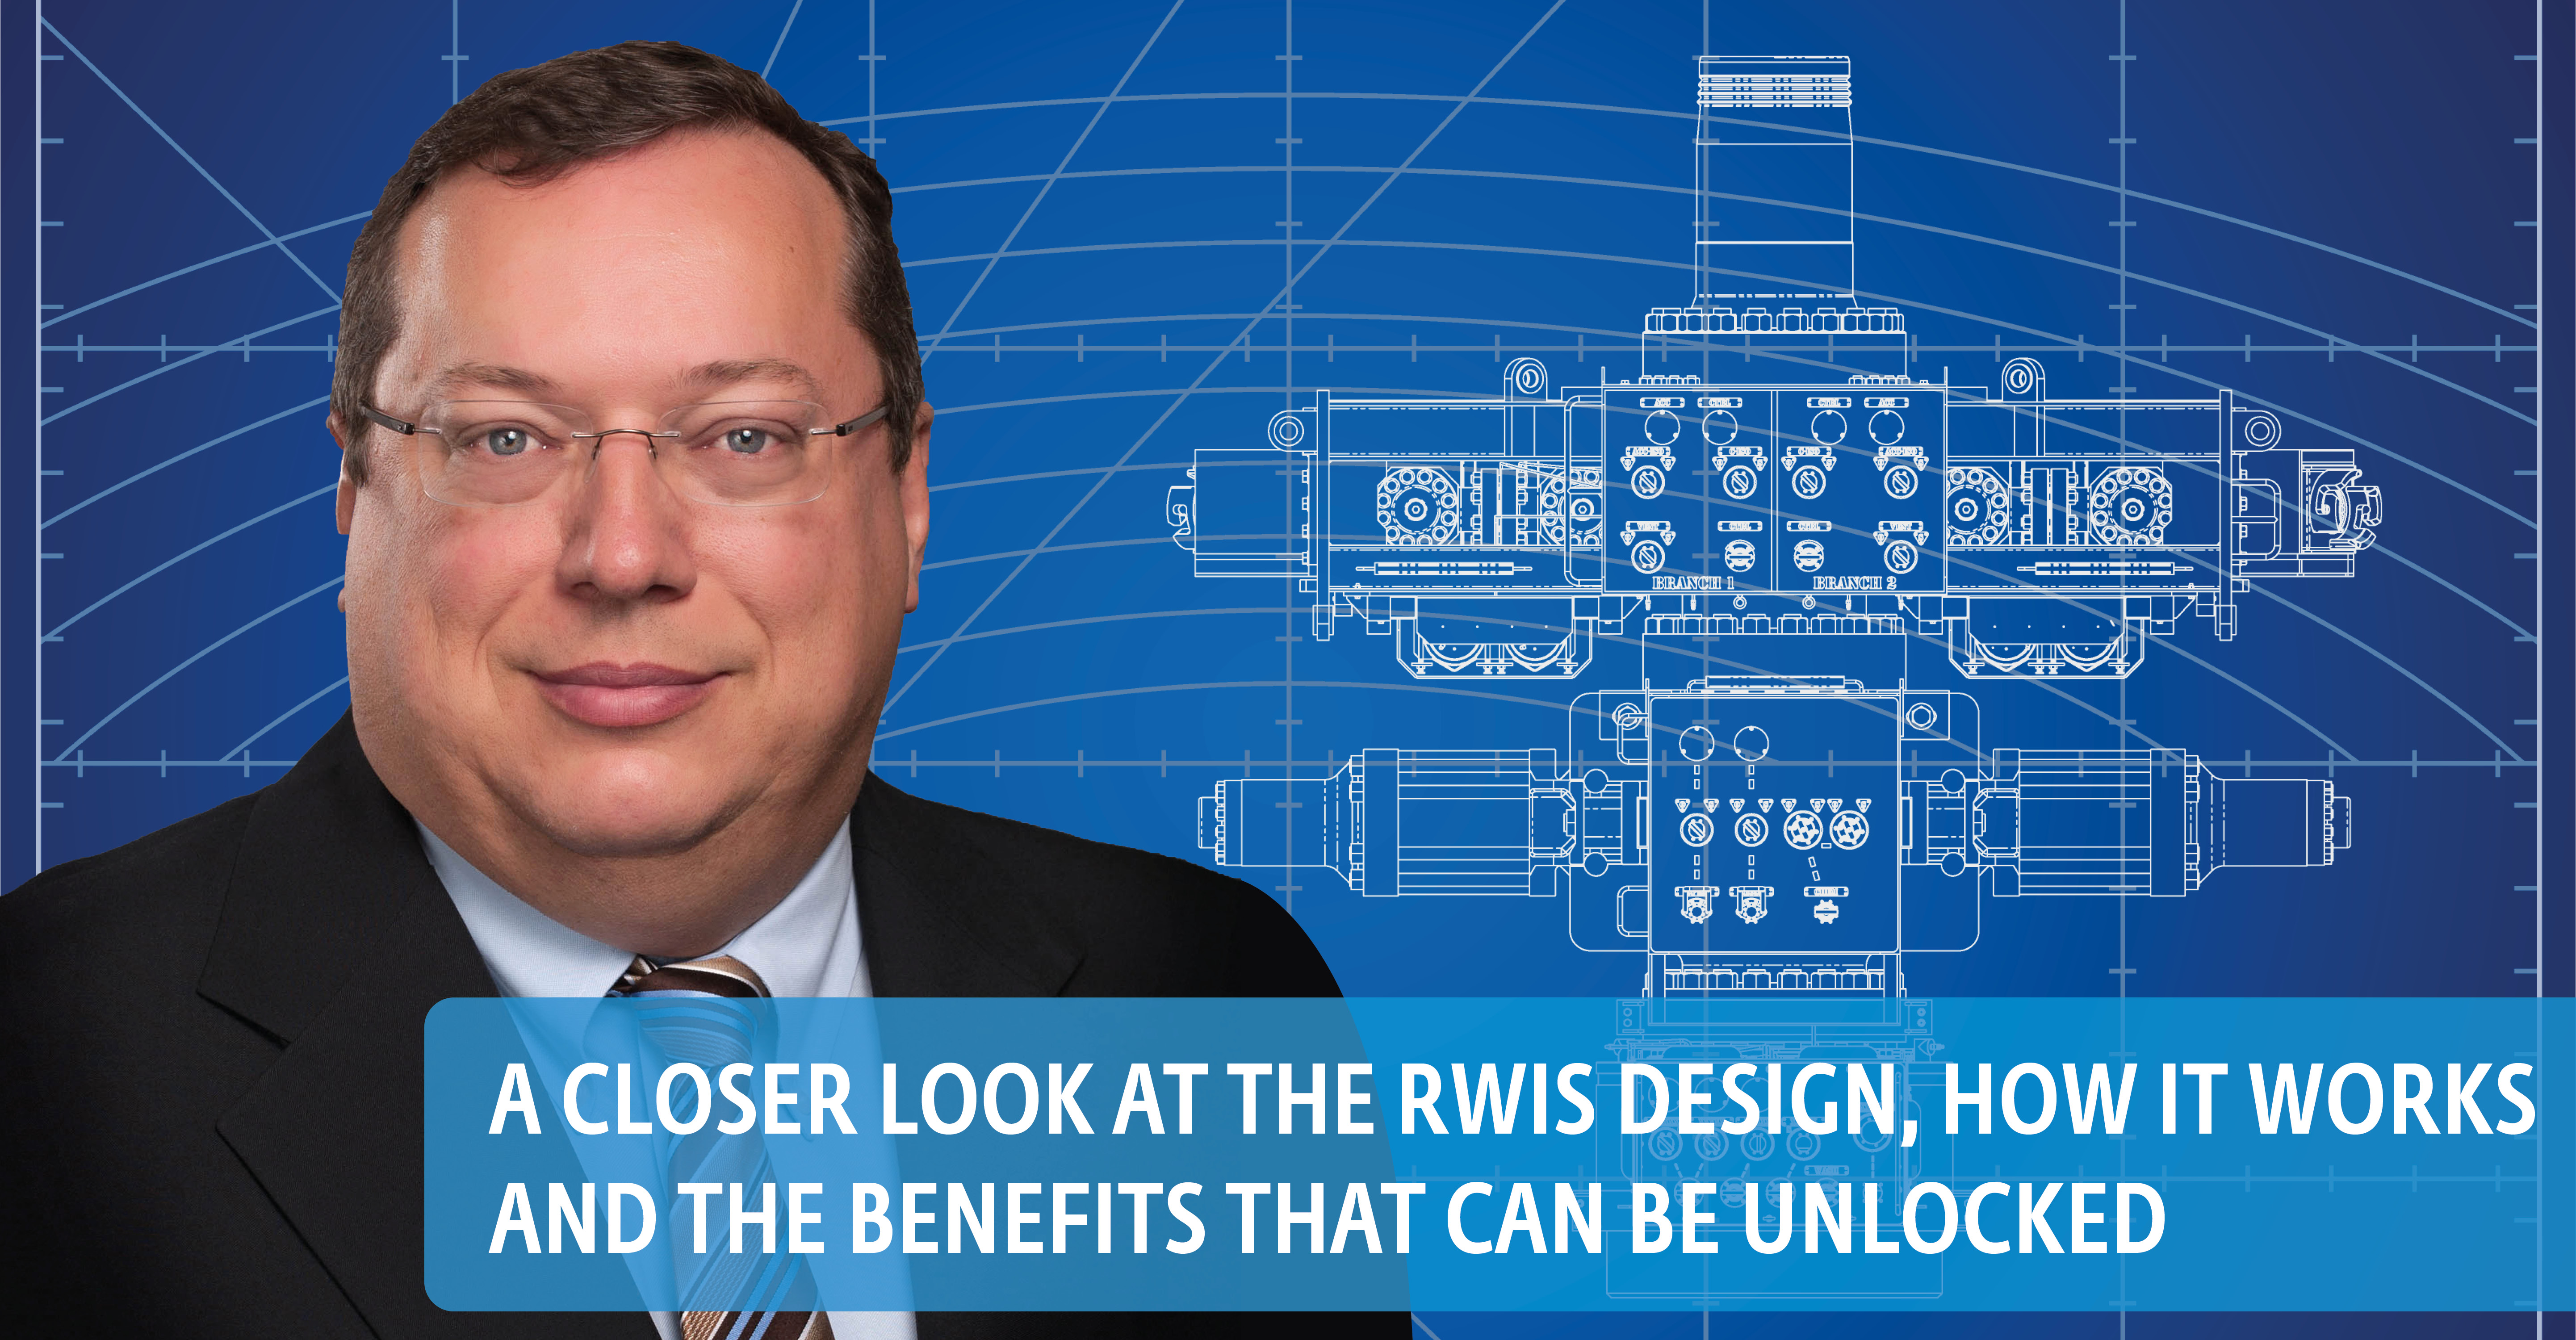 A closer look at the RWIS design, how it works and the benefits that can be unlocked